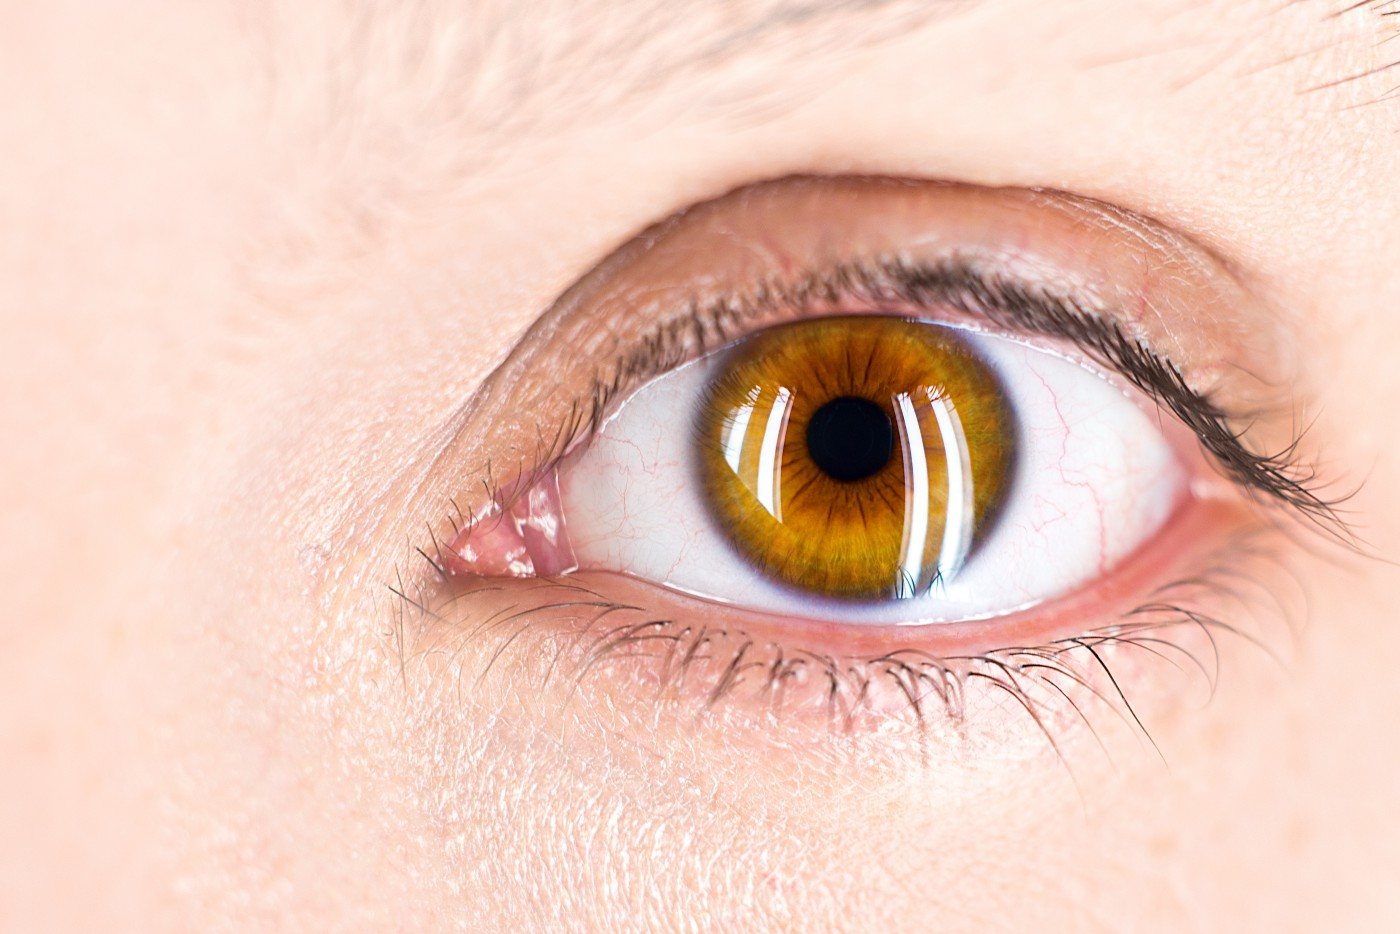 A close up of a brown eye representing sight